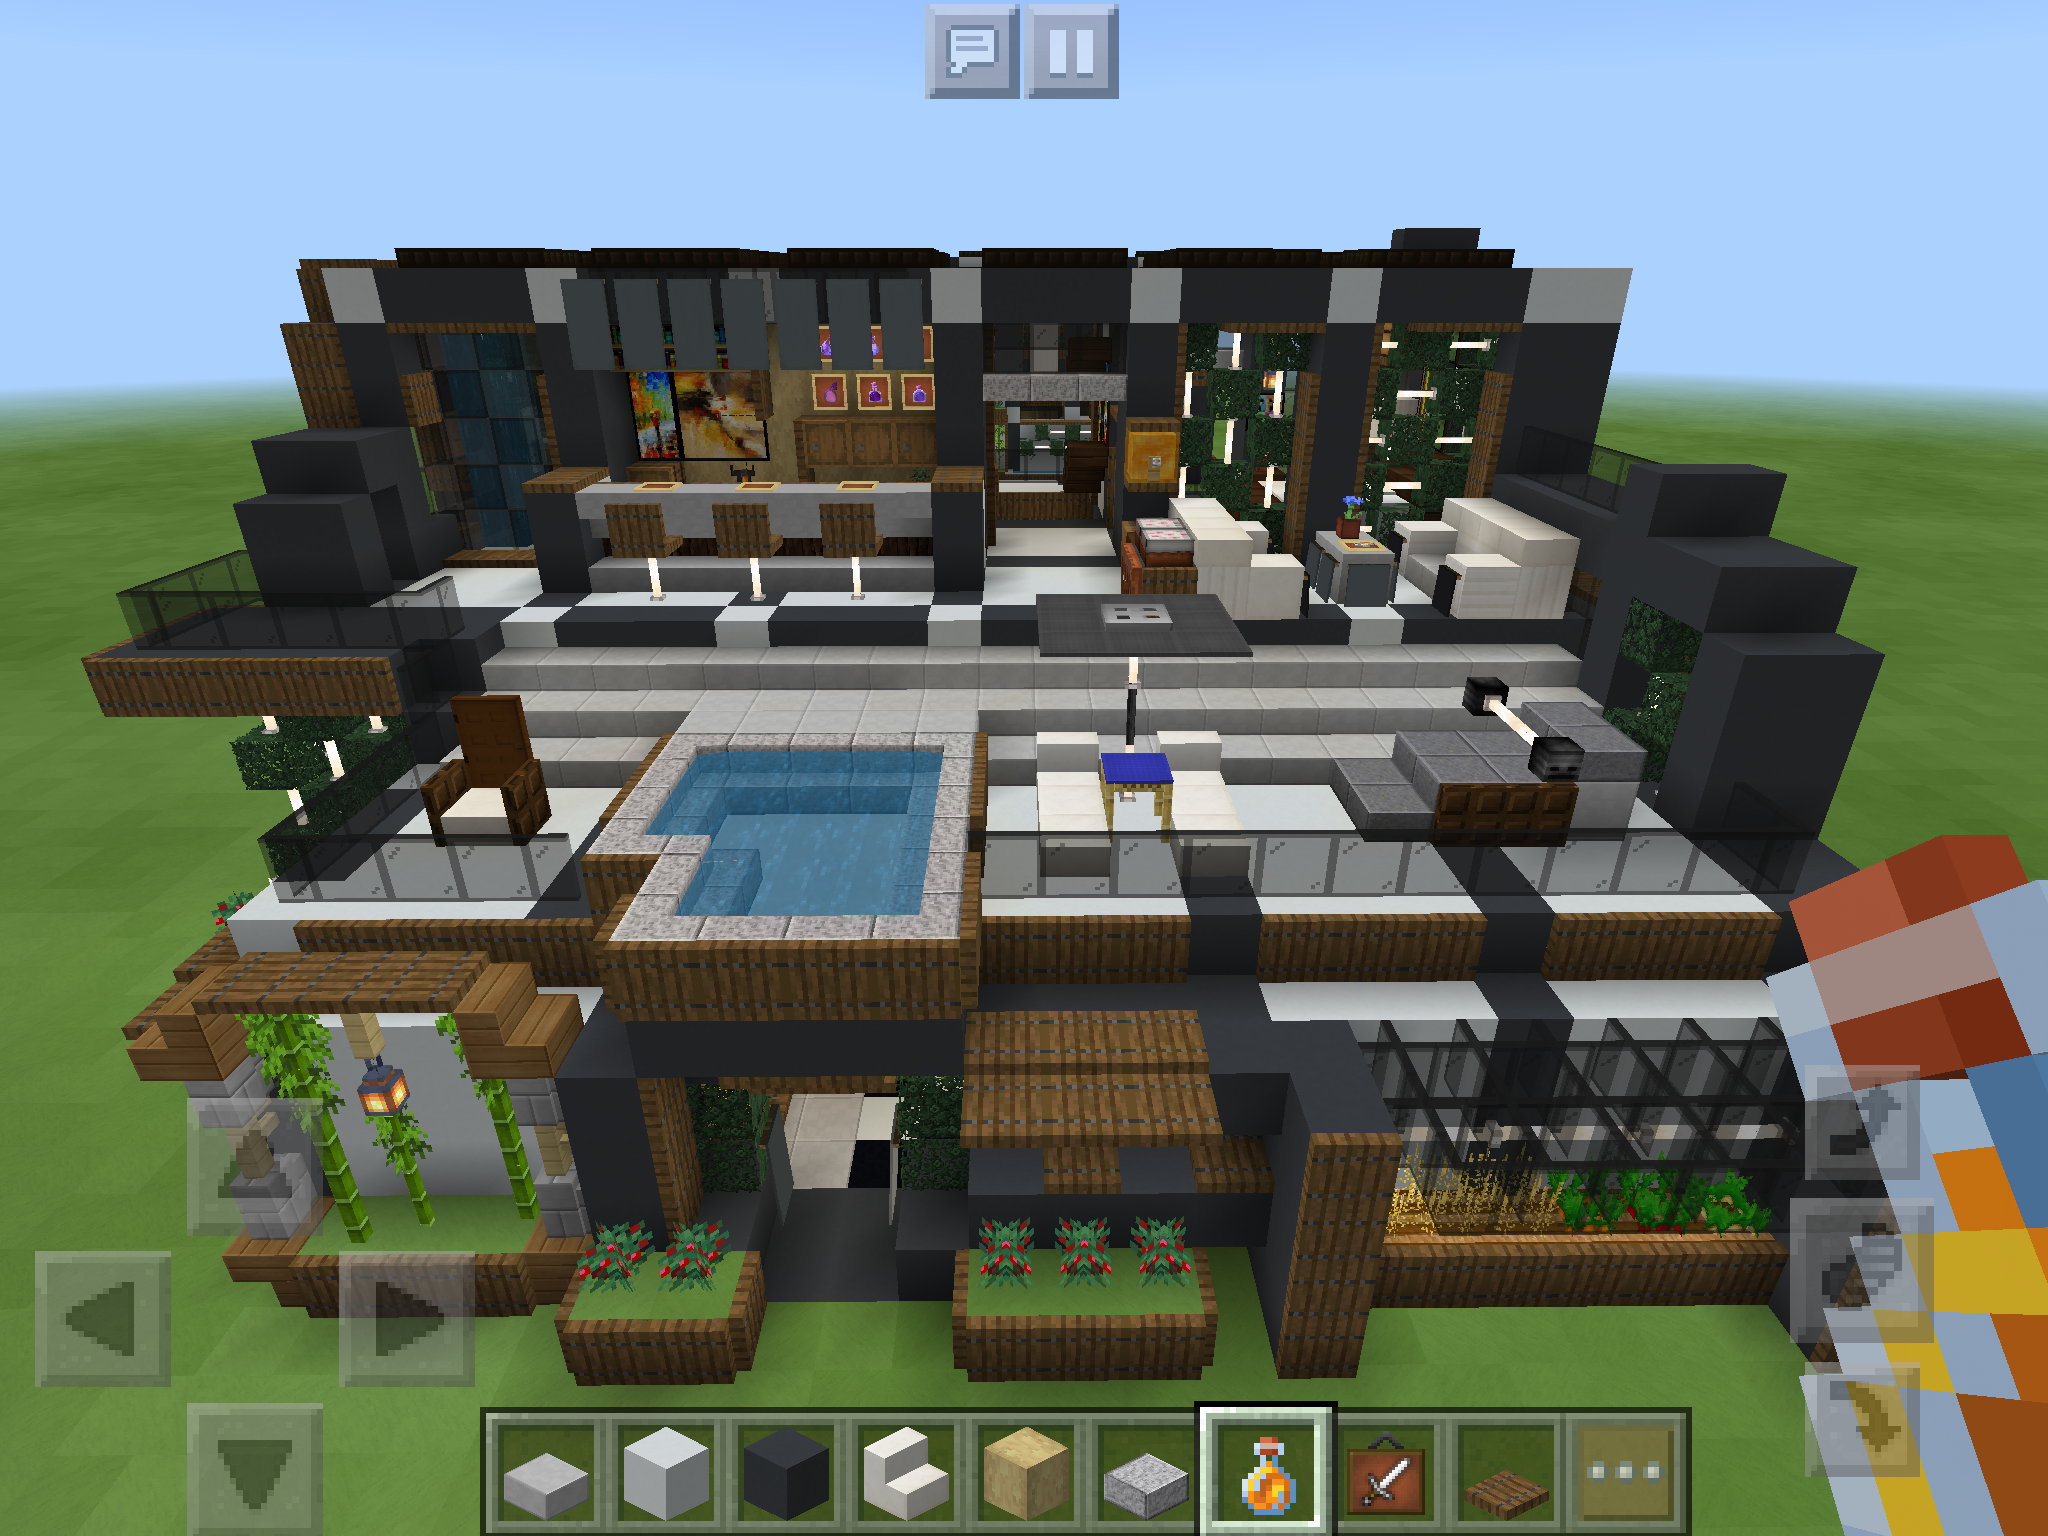 Ideas For Minecraft Houses In 2021 Minecraft House Plans Minecraft House Designs Minecraft Houses